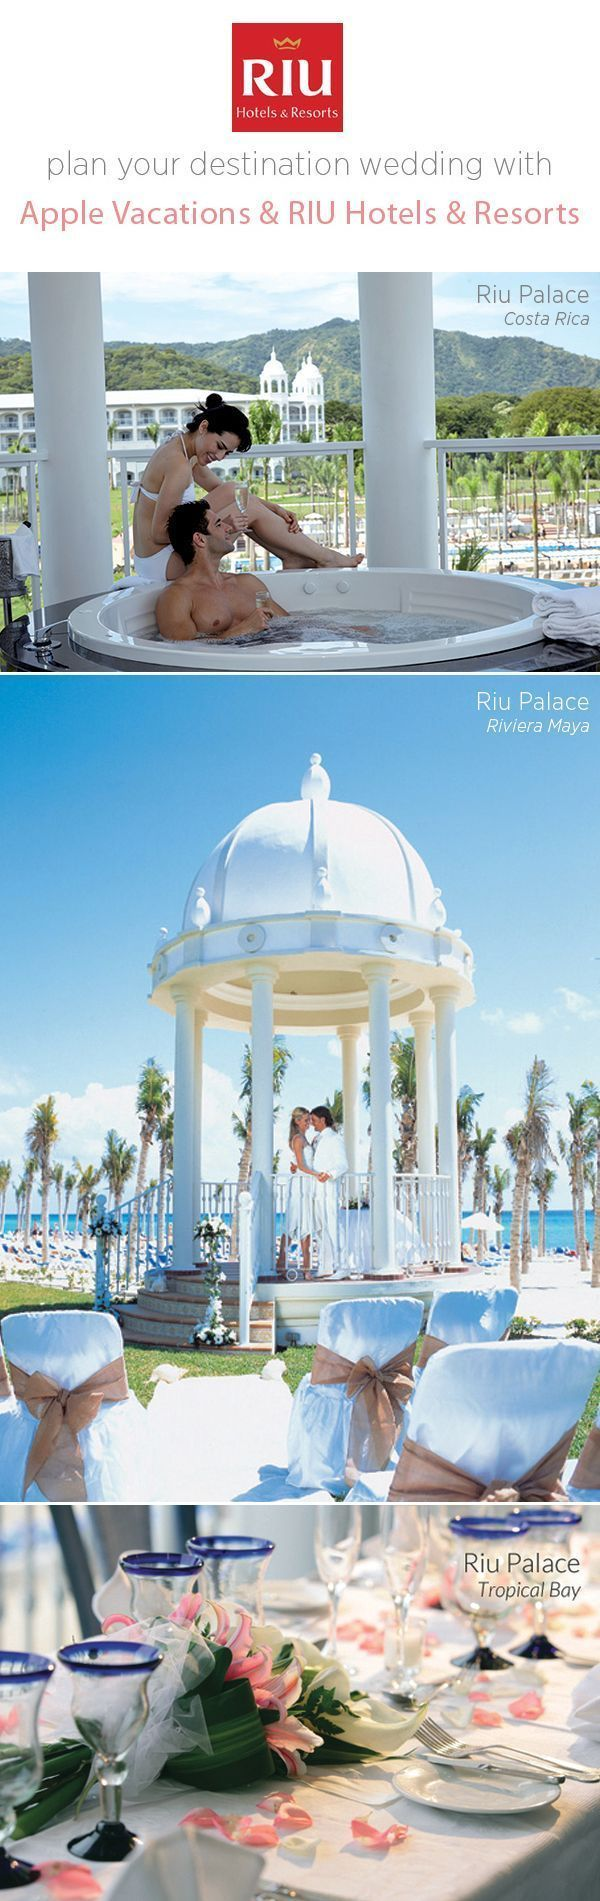 Apple Vacations & RIU Hotels & Resorts